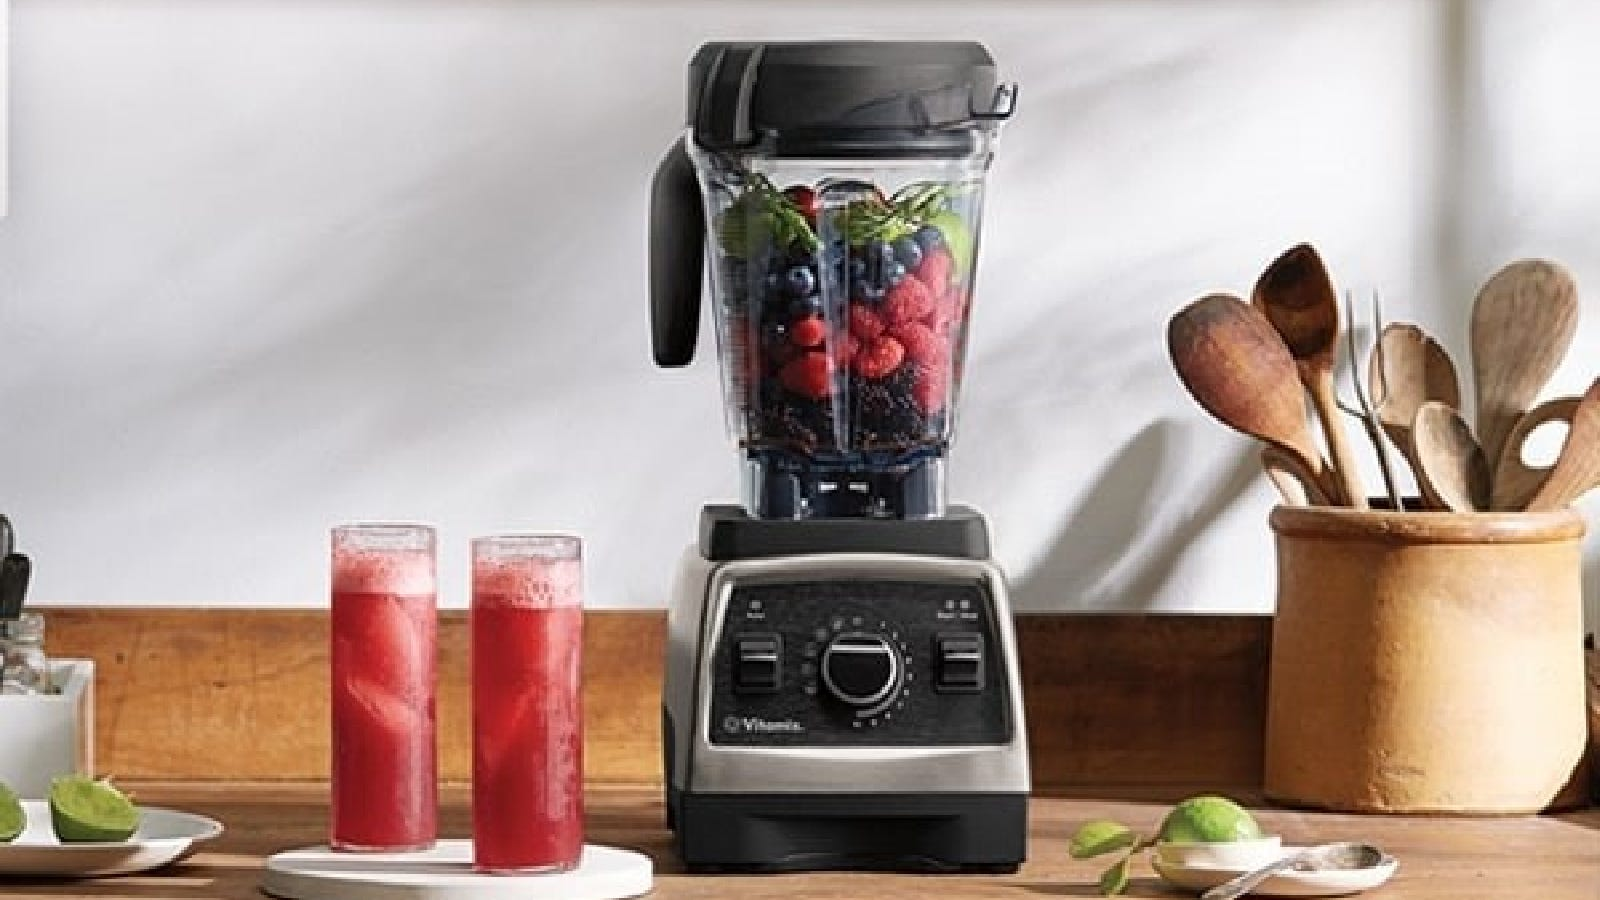 An image of a Vitamix blender filled with fruits, ready to make a smoothie.